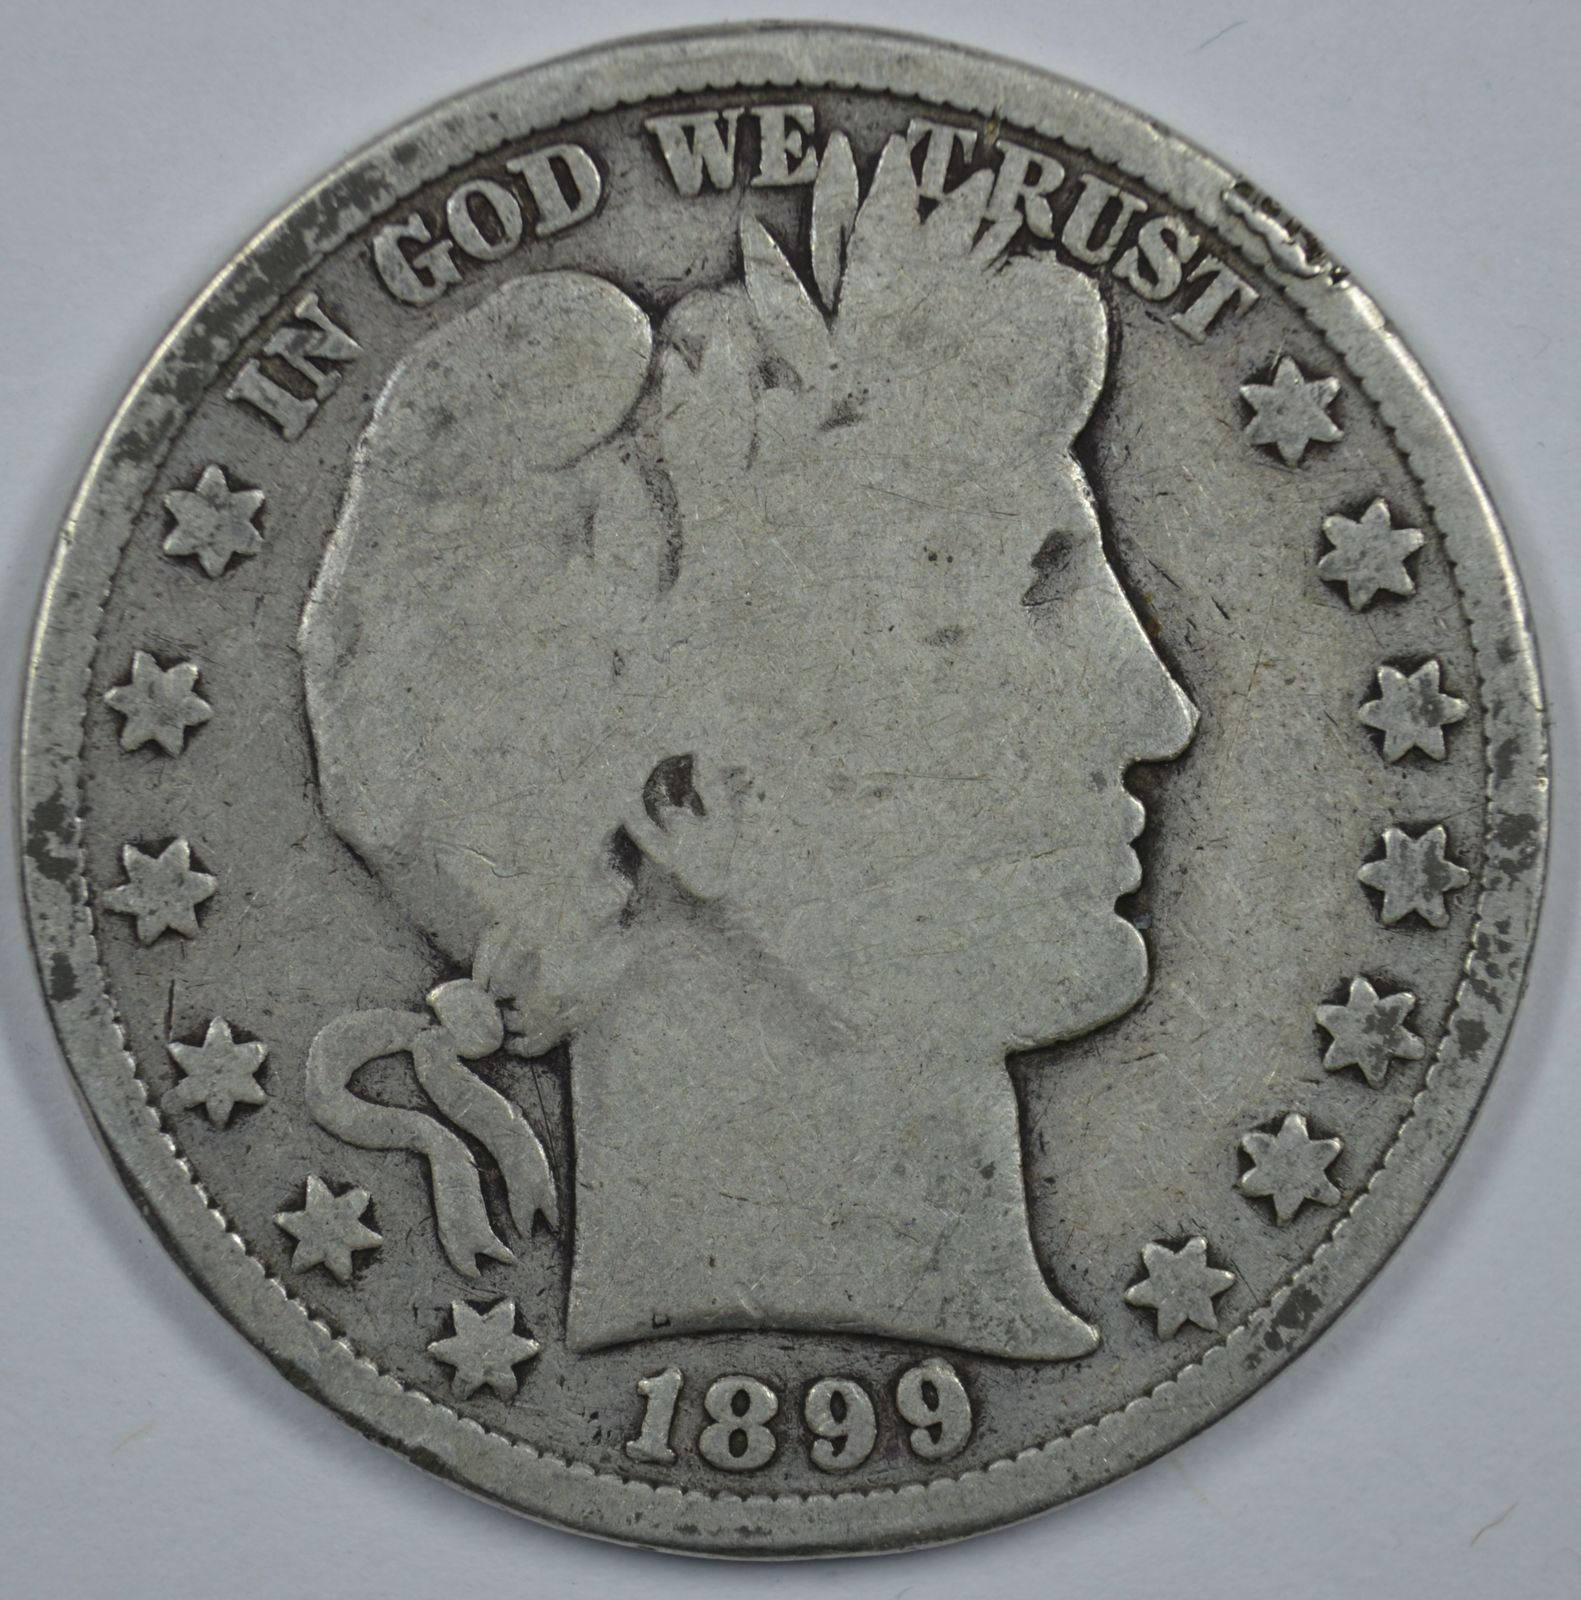 Primary image for 1899 P Barber circulated silver half